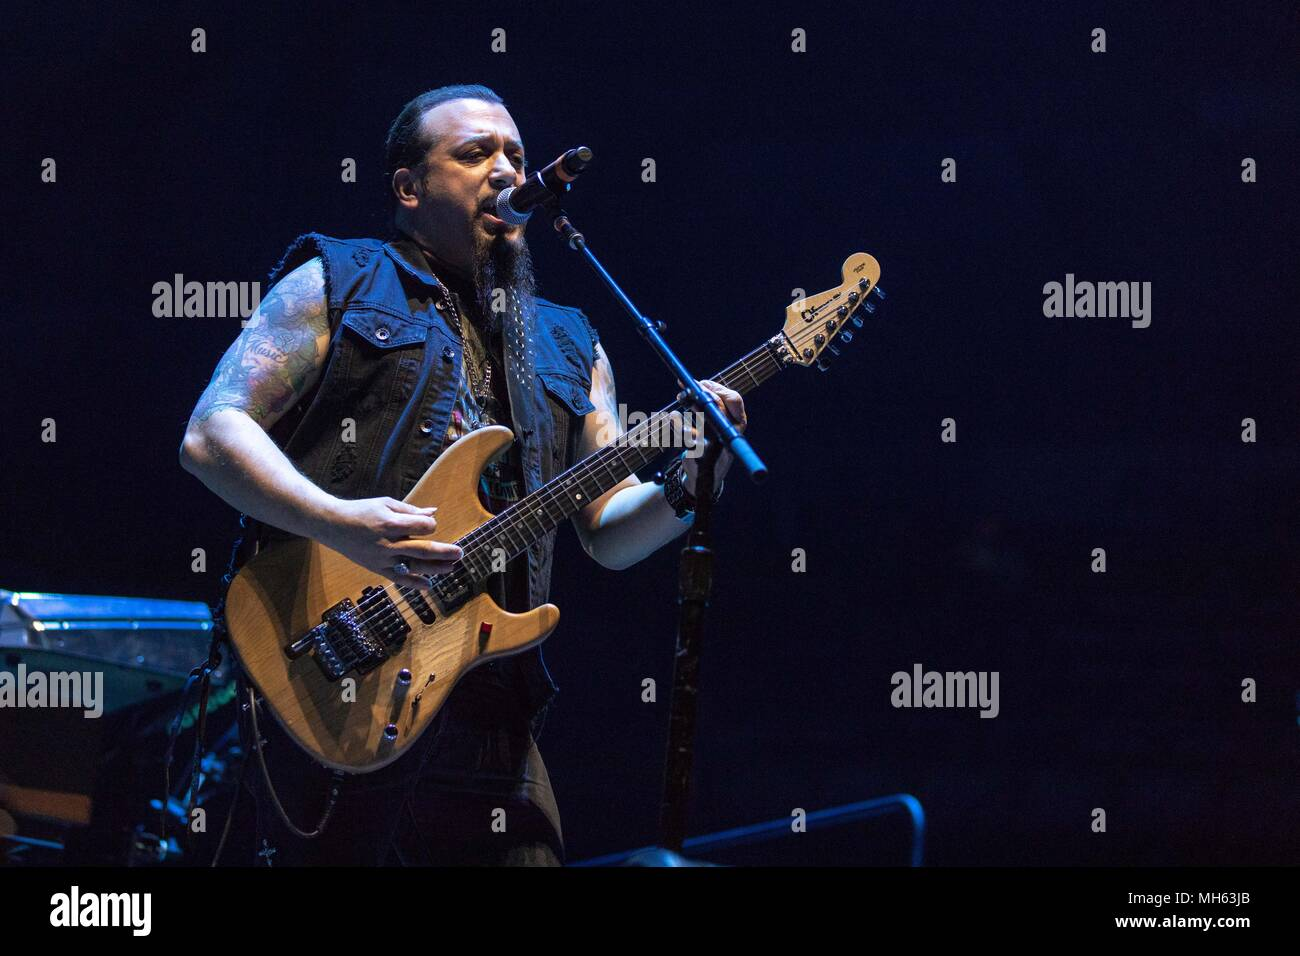 Milwaukee Wisconsin Usa 29th Apr 2018 Mike Orlando Of Stereo Wiring A New House For Satellite During The This Is Not Sale Tour At Bradley Center In Credit Daniel Deslover Zuma Wire Alamy